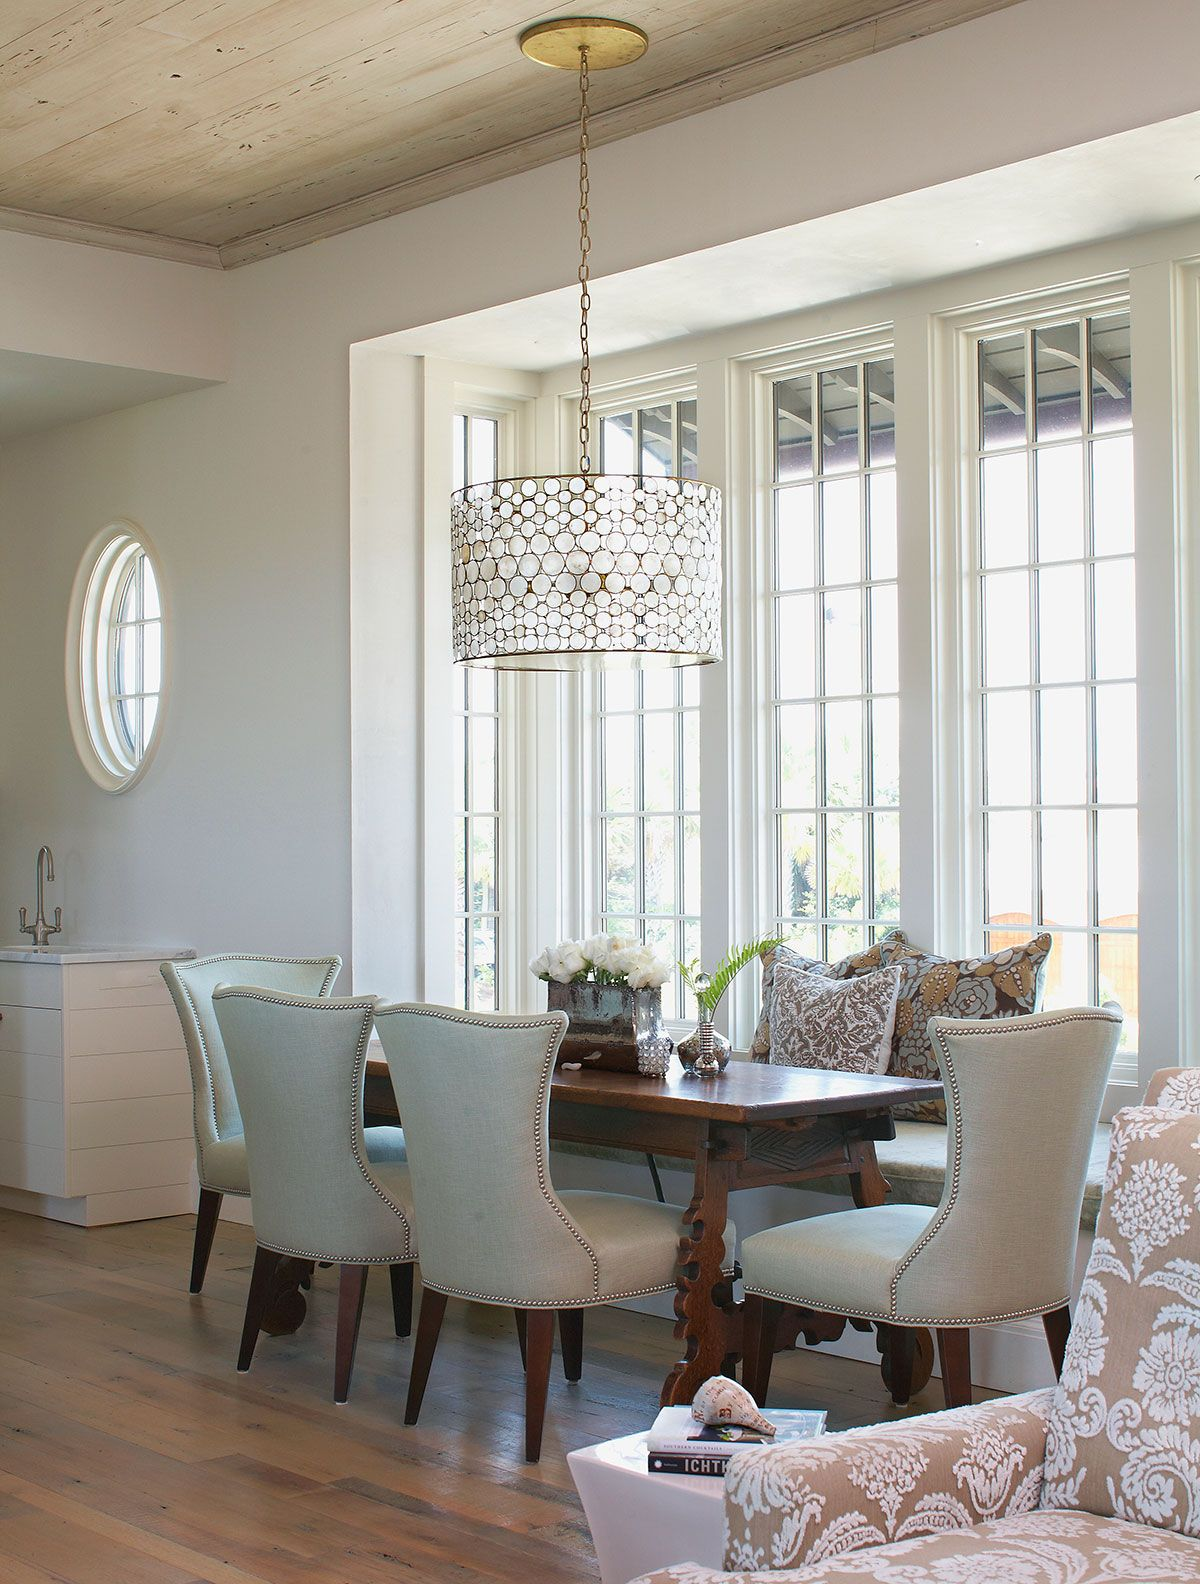 Crystal Dining Room Chandeliers Marvelous Dining Rooms With. All Photos To  Crystal Dining Room Chandeliers Crystal Dining Room. Add An Opulent Focal  Point ...